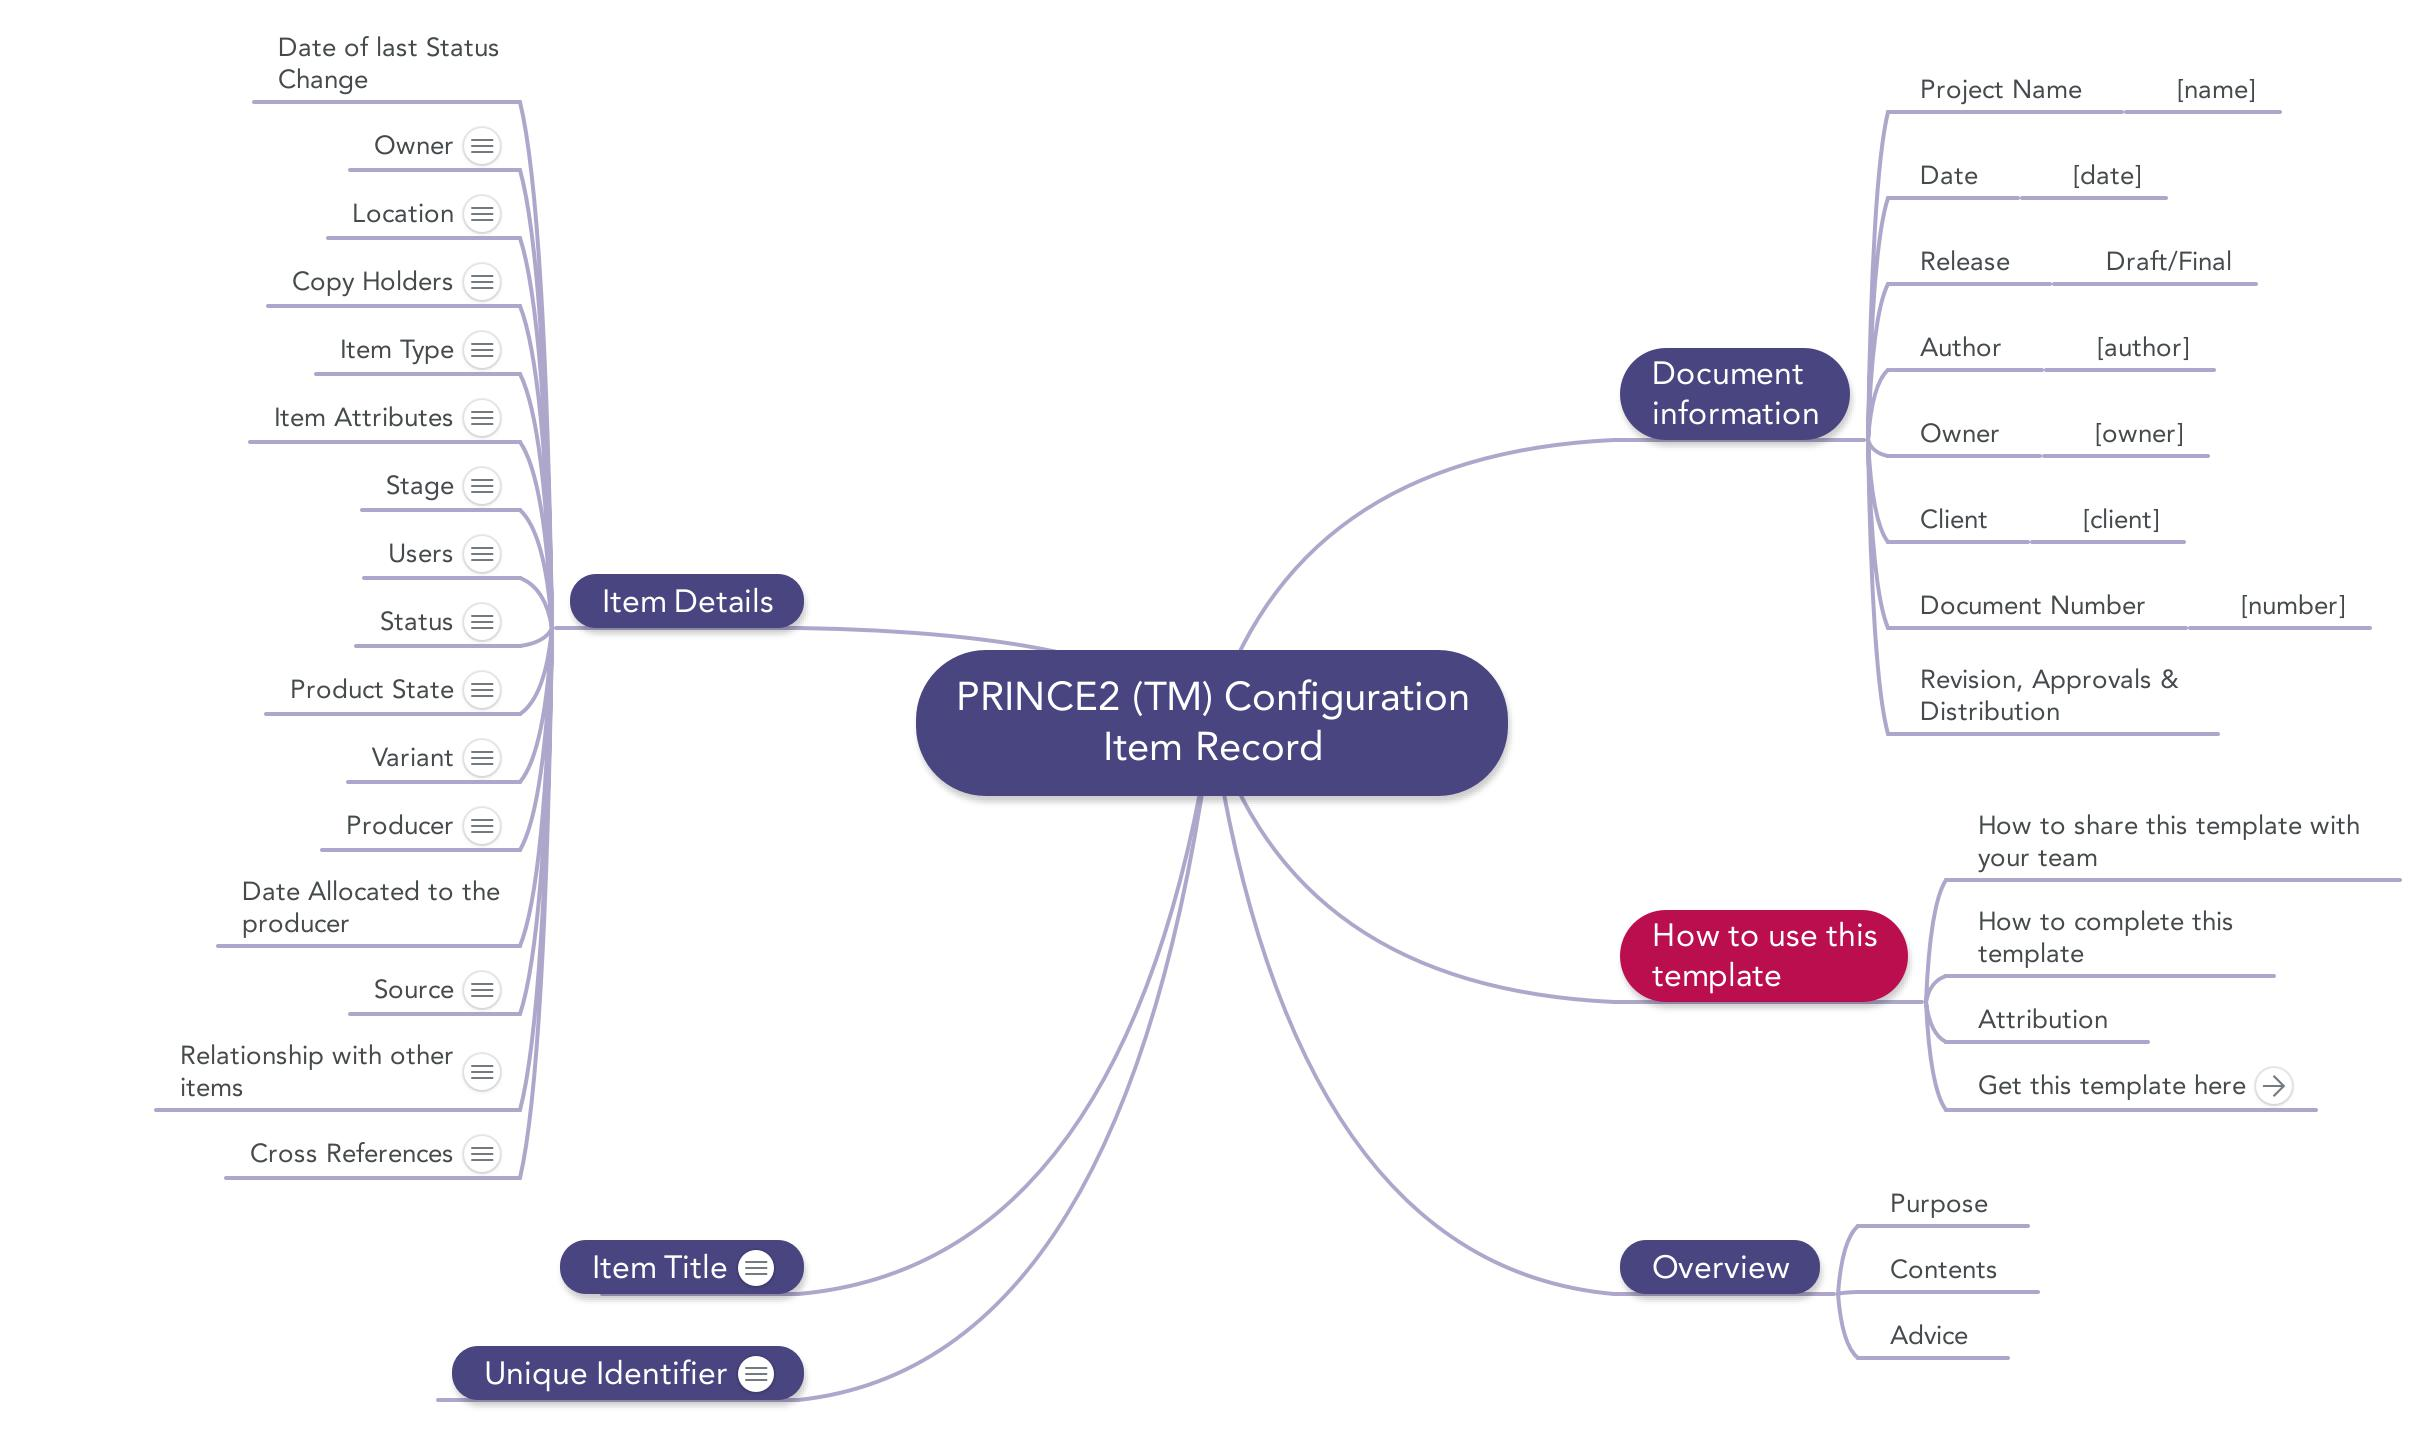 Prince2 templates mind maps word excel and pdf download the configuration item record in word pdf or mindmap format alramifo Gallery